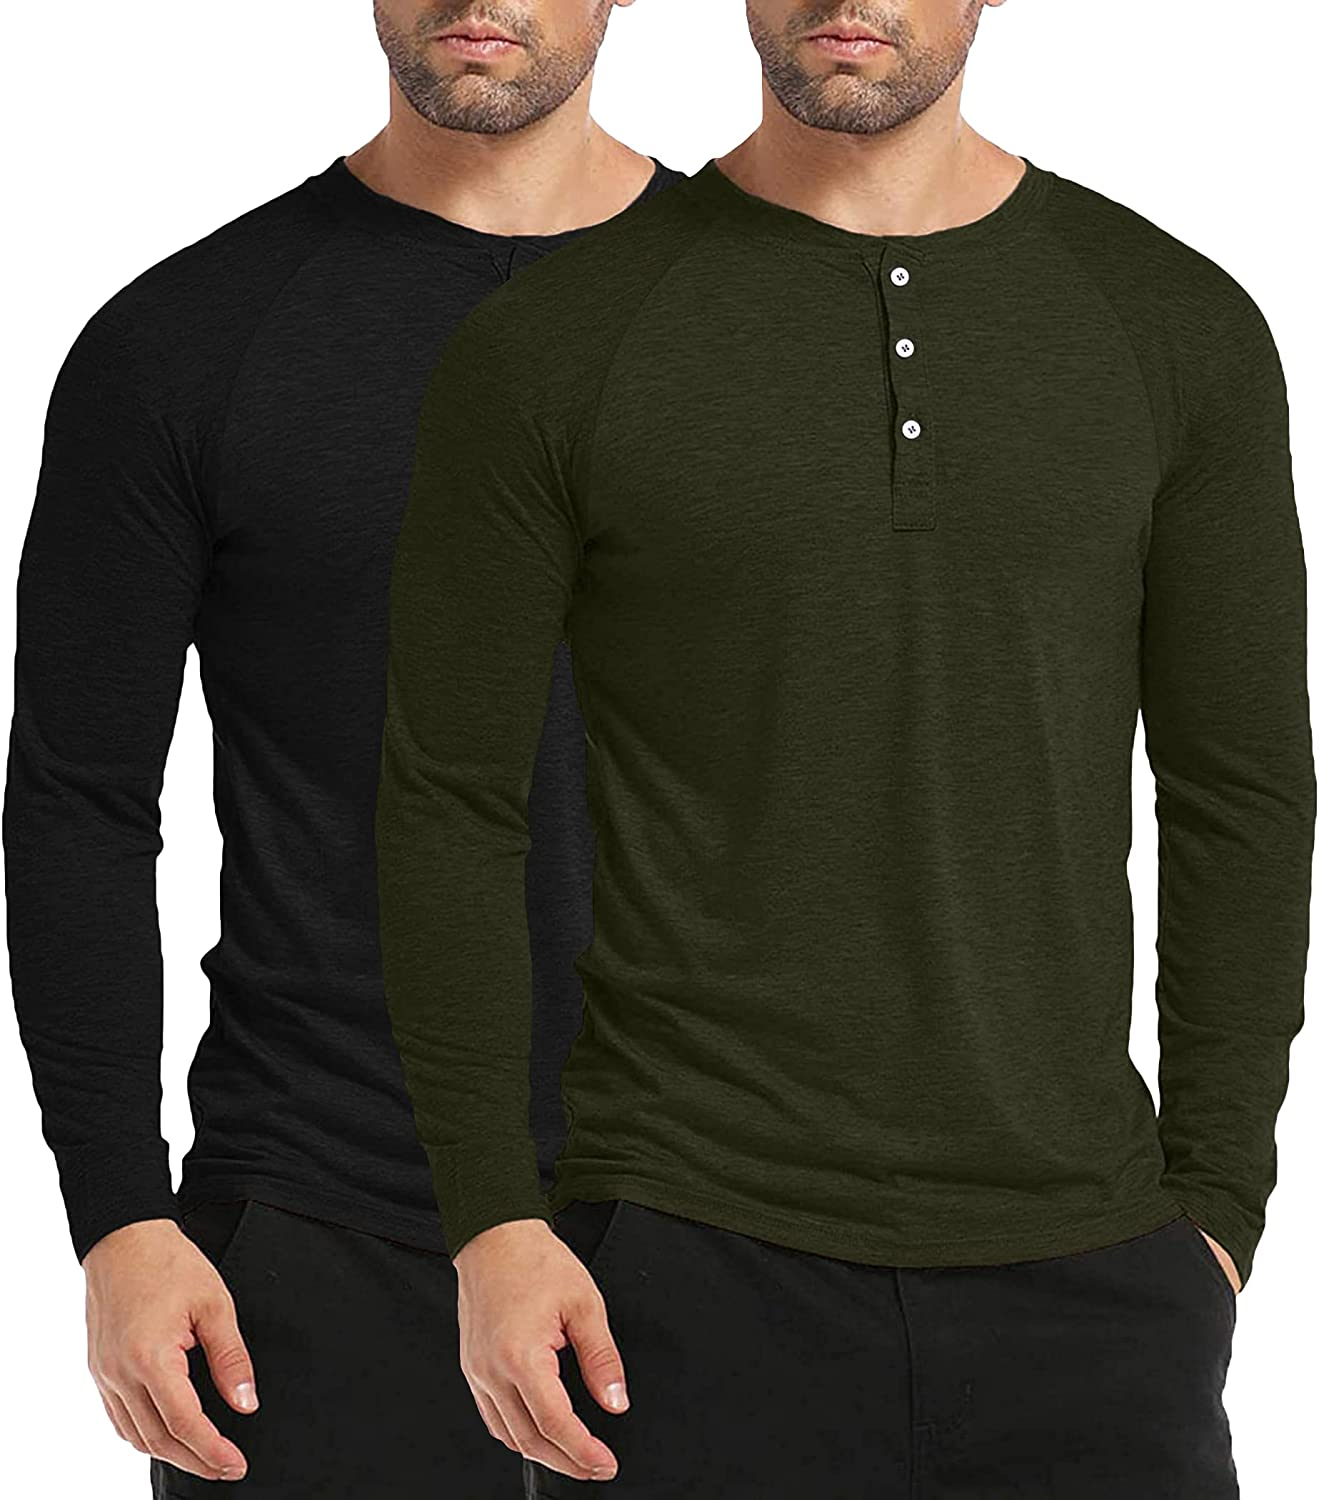 CONFANDY Men's Long Sleeve V Neck Button Tee Shirt 2 Pack Slim Fit Casual Henley Shirts